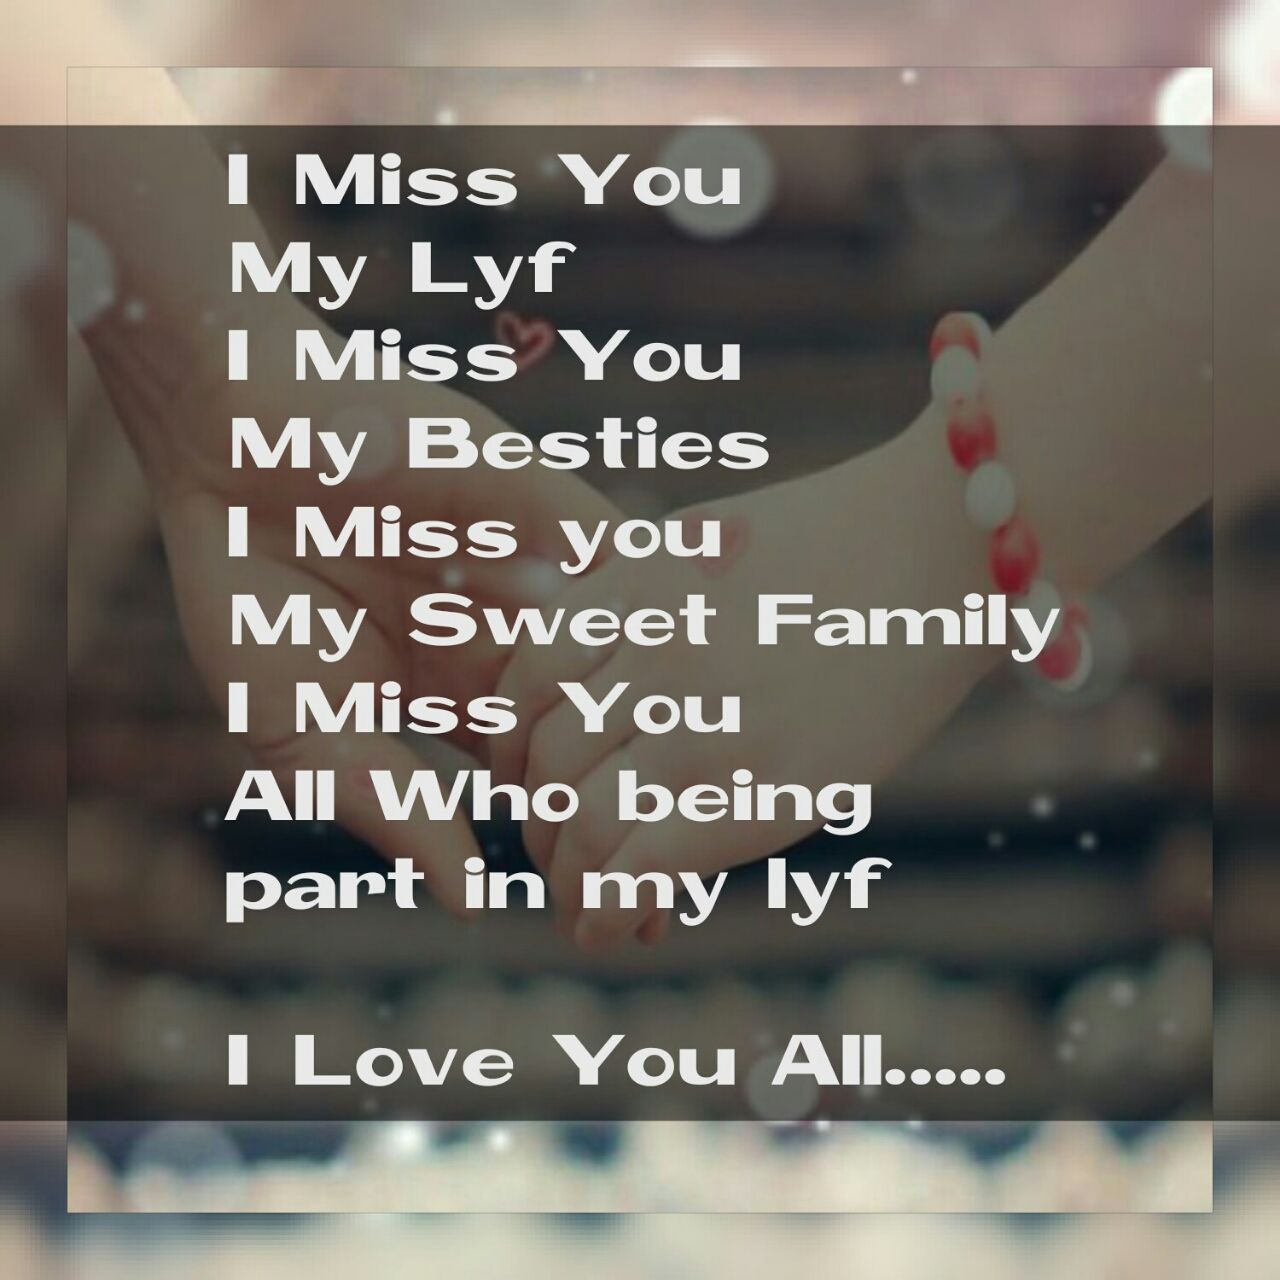 I Miss You My Lyf I Miss You My Besties I Miss You My Sweet Family I